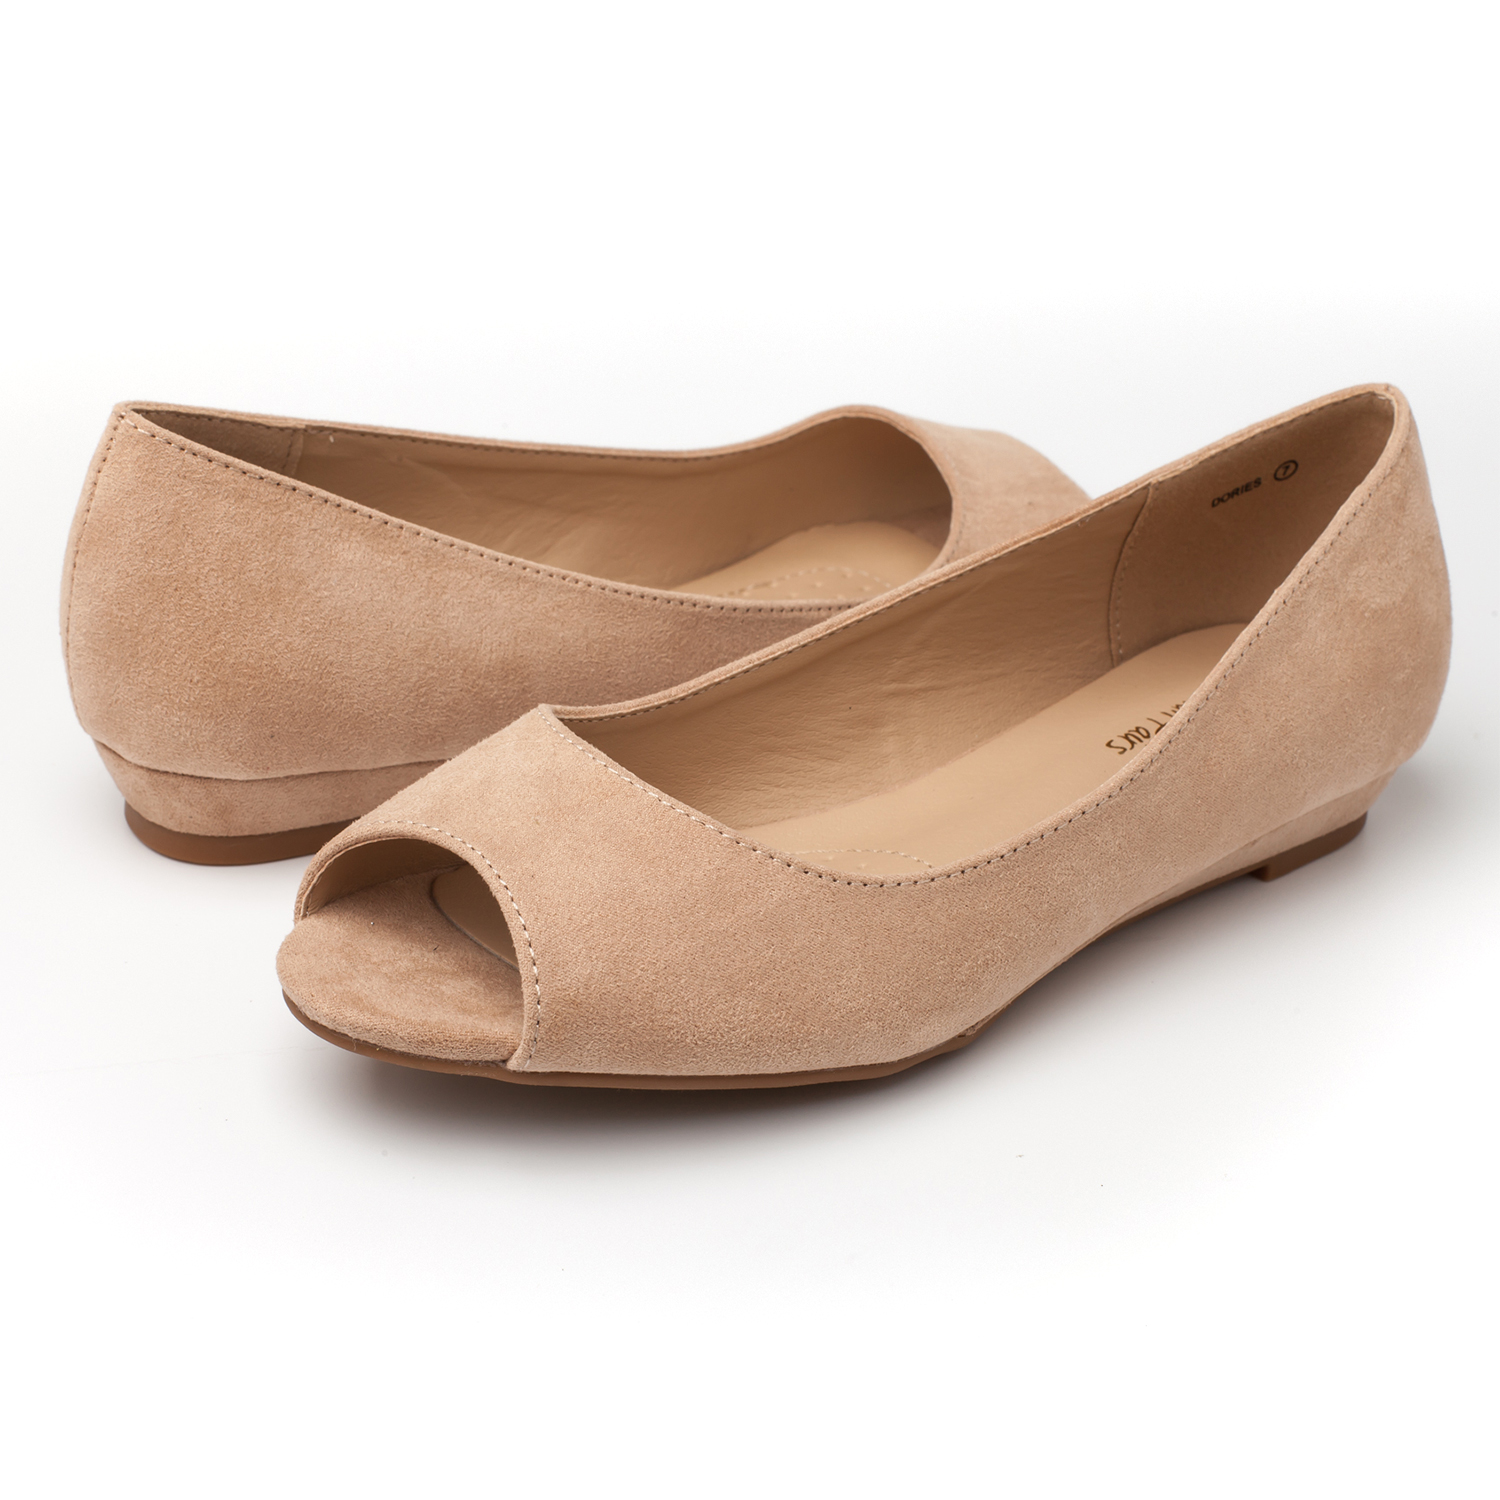 DREAM-PAIRS-Womens-Ballet-Flats-Low-Heel-Open-Toe-Slip-On-Dress-Flat-Shoes thumbnail 39